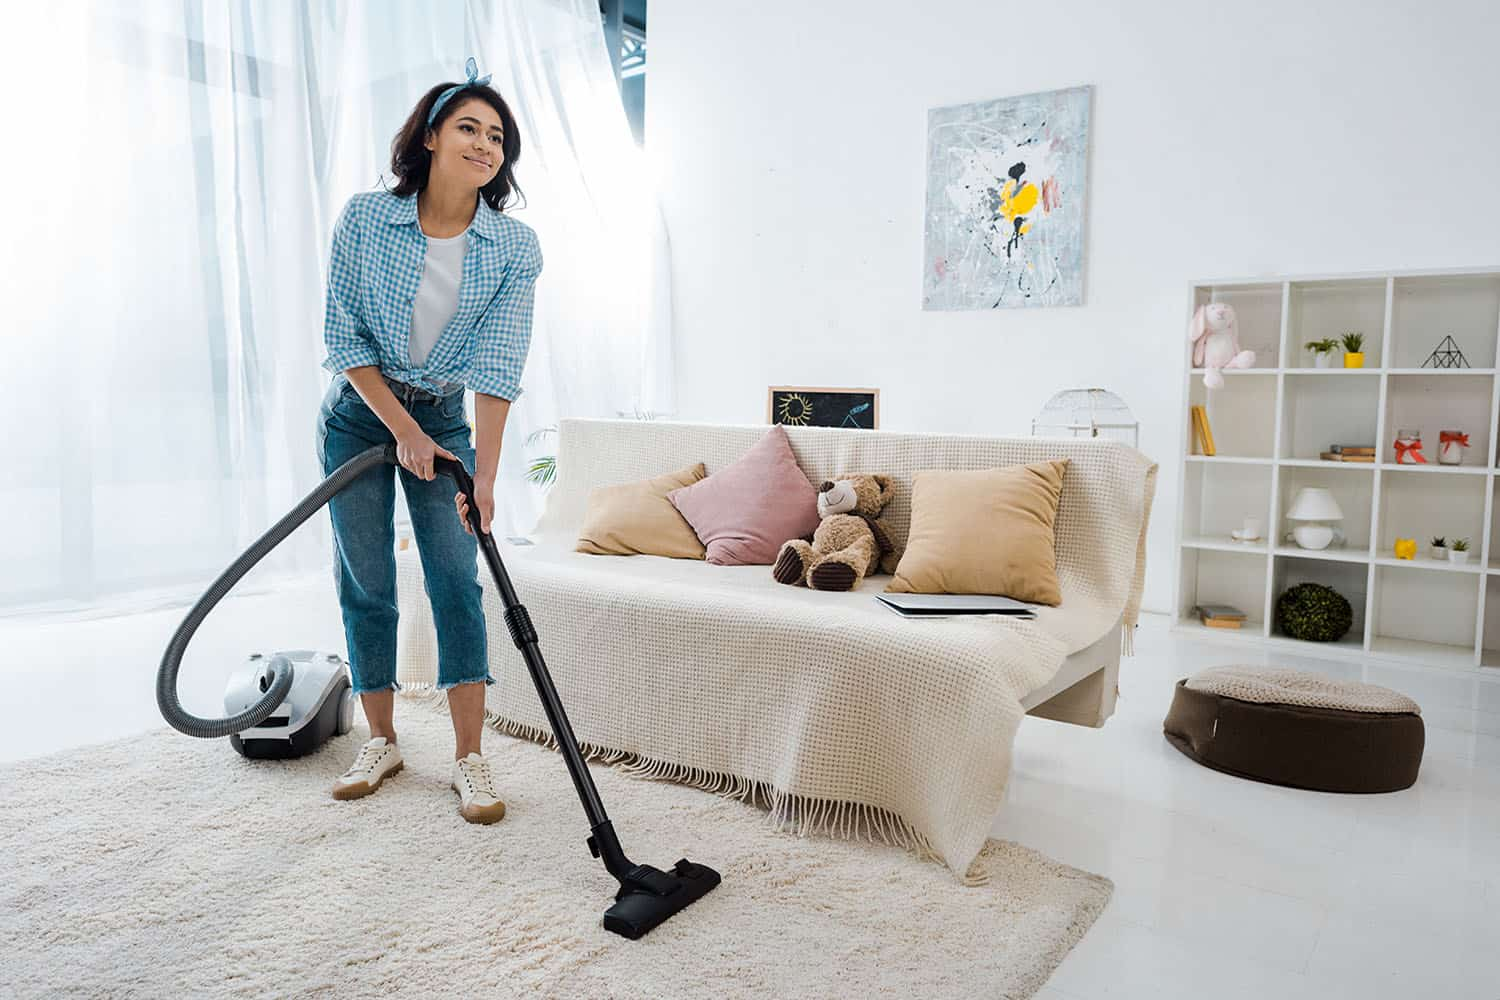 Attractive woman cleaning carpet with vacuum cleaner